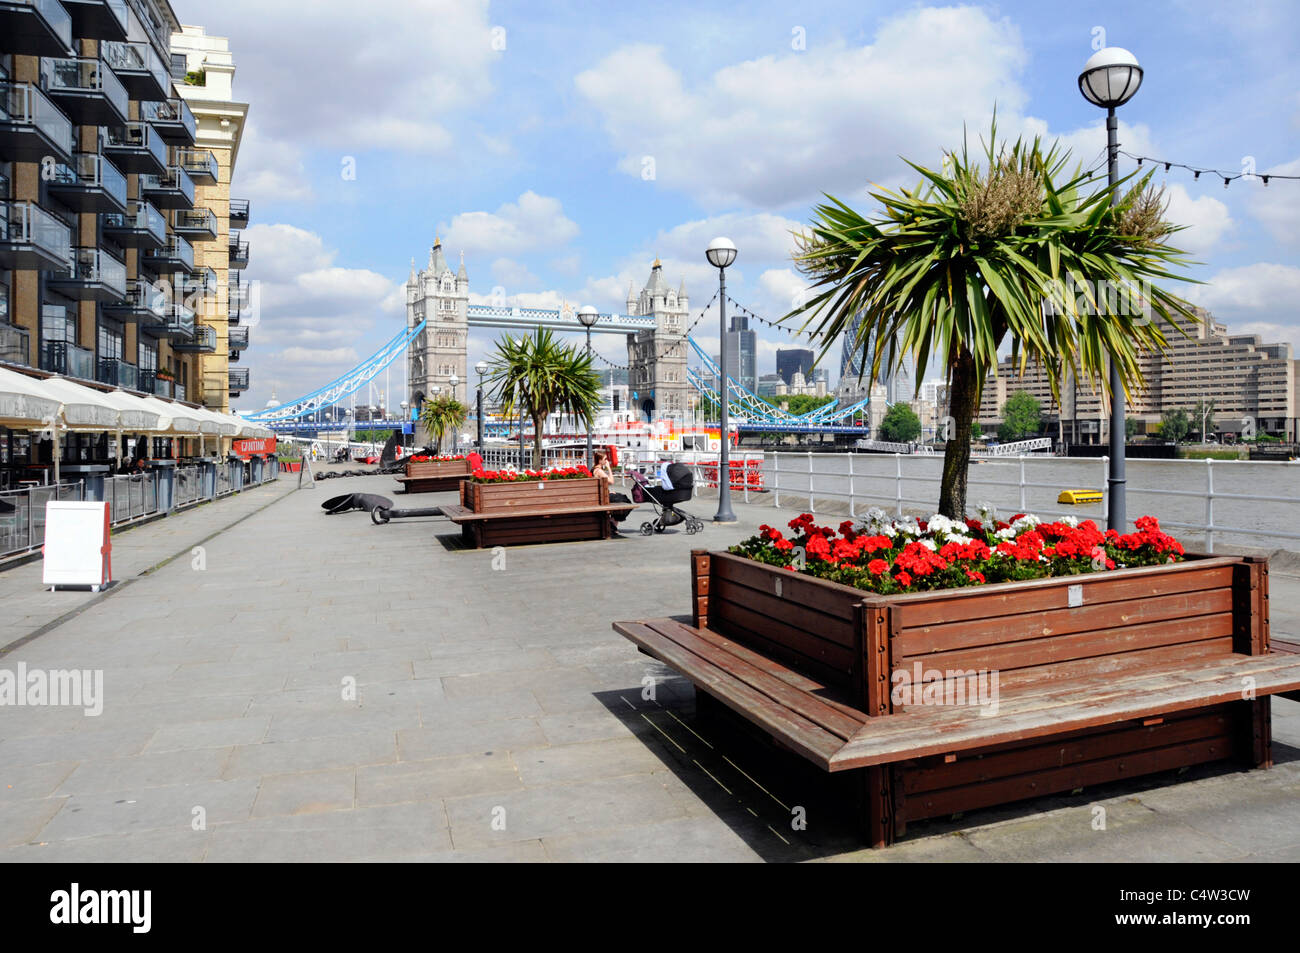 Summer flowers planter box on riverside Thames Path promenade Butlers Wharf apartments & restuarants Shad Thames - Stock Image